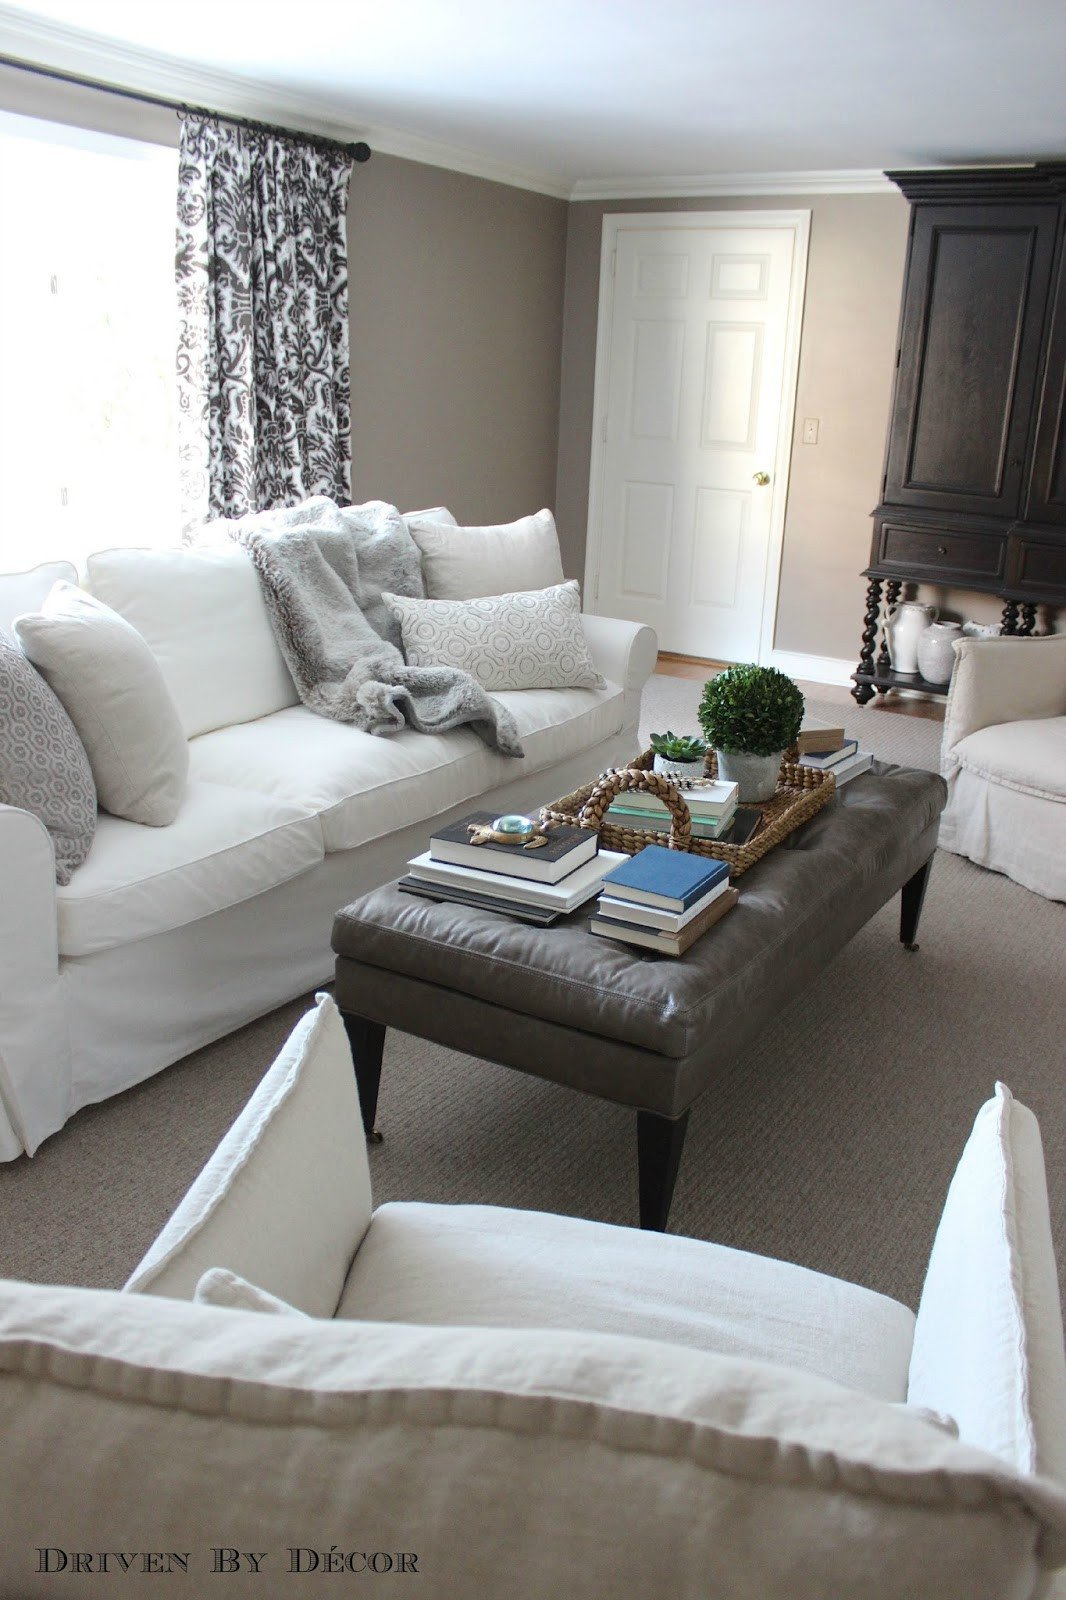 Living Room Decor with Sectional Inspirational How We Supersized Our Ikea Ektorp sofa Driven by Decor